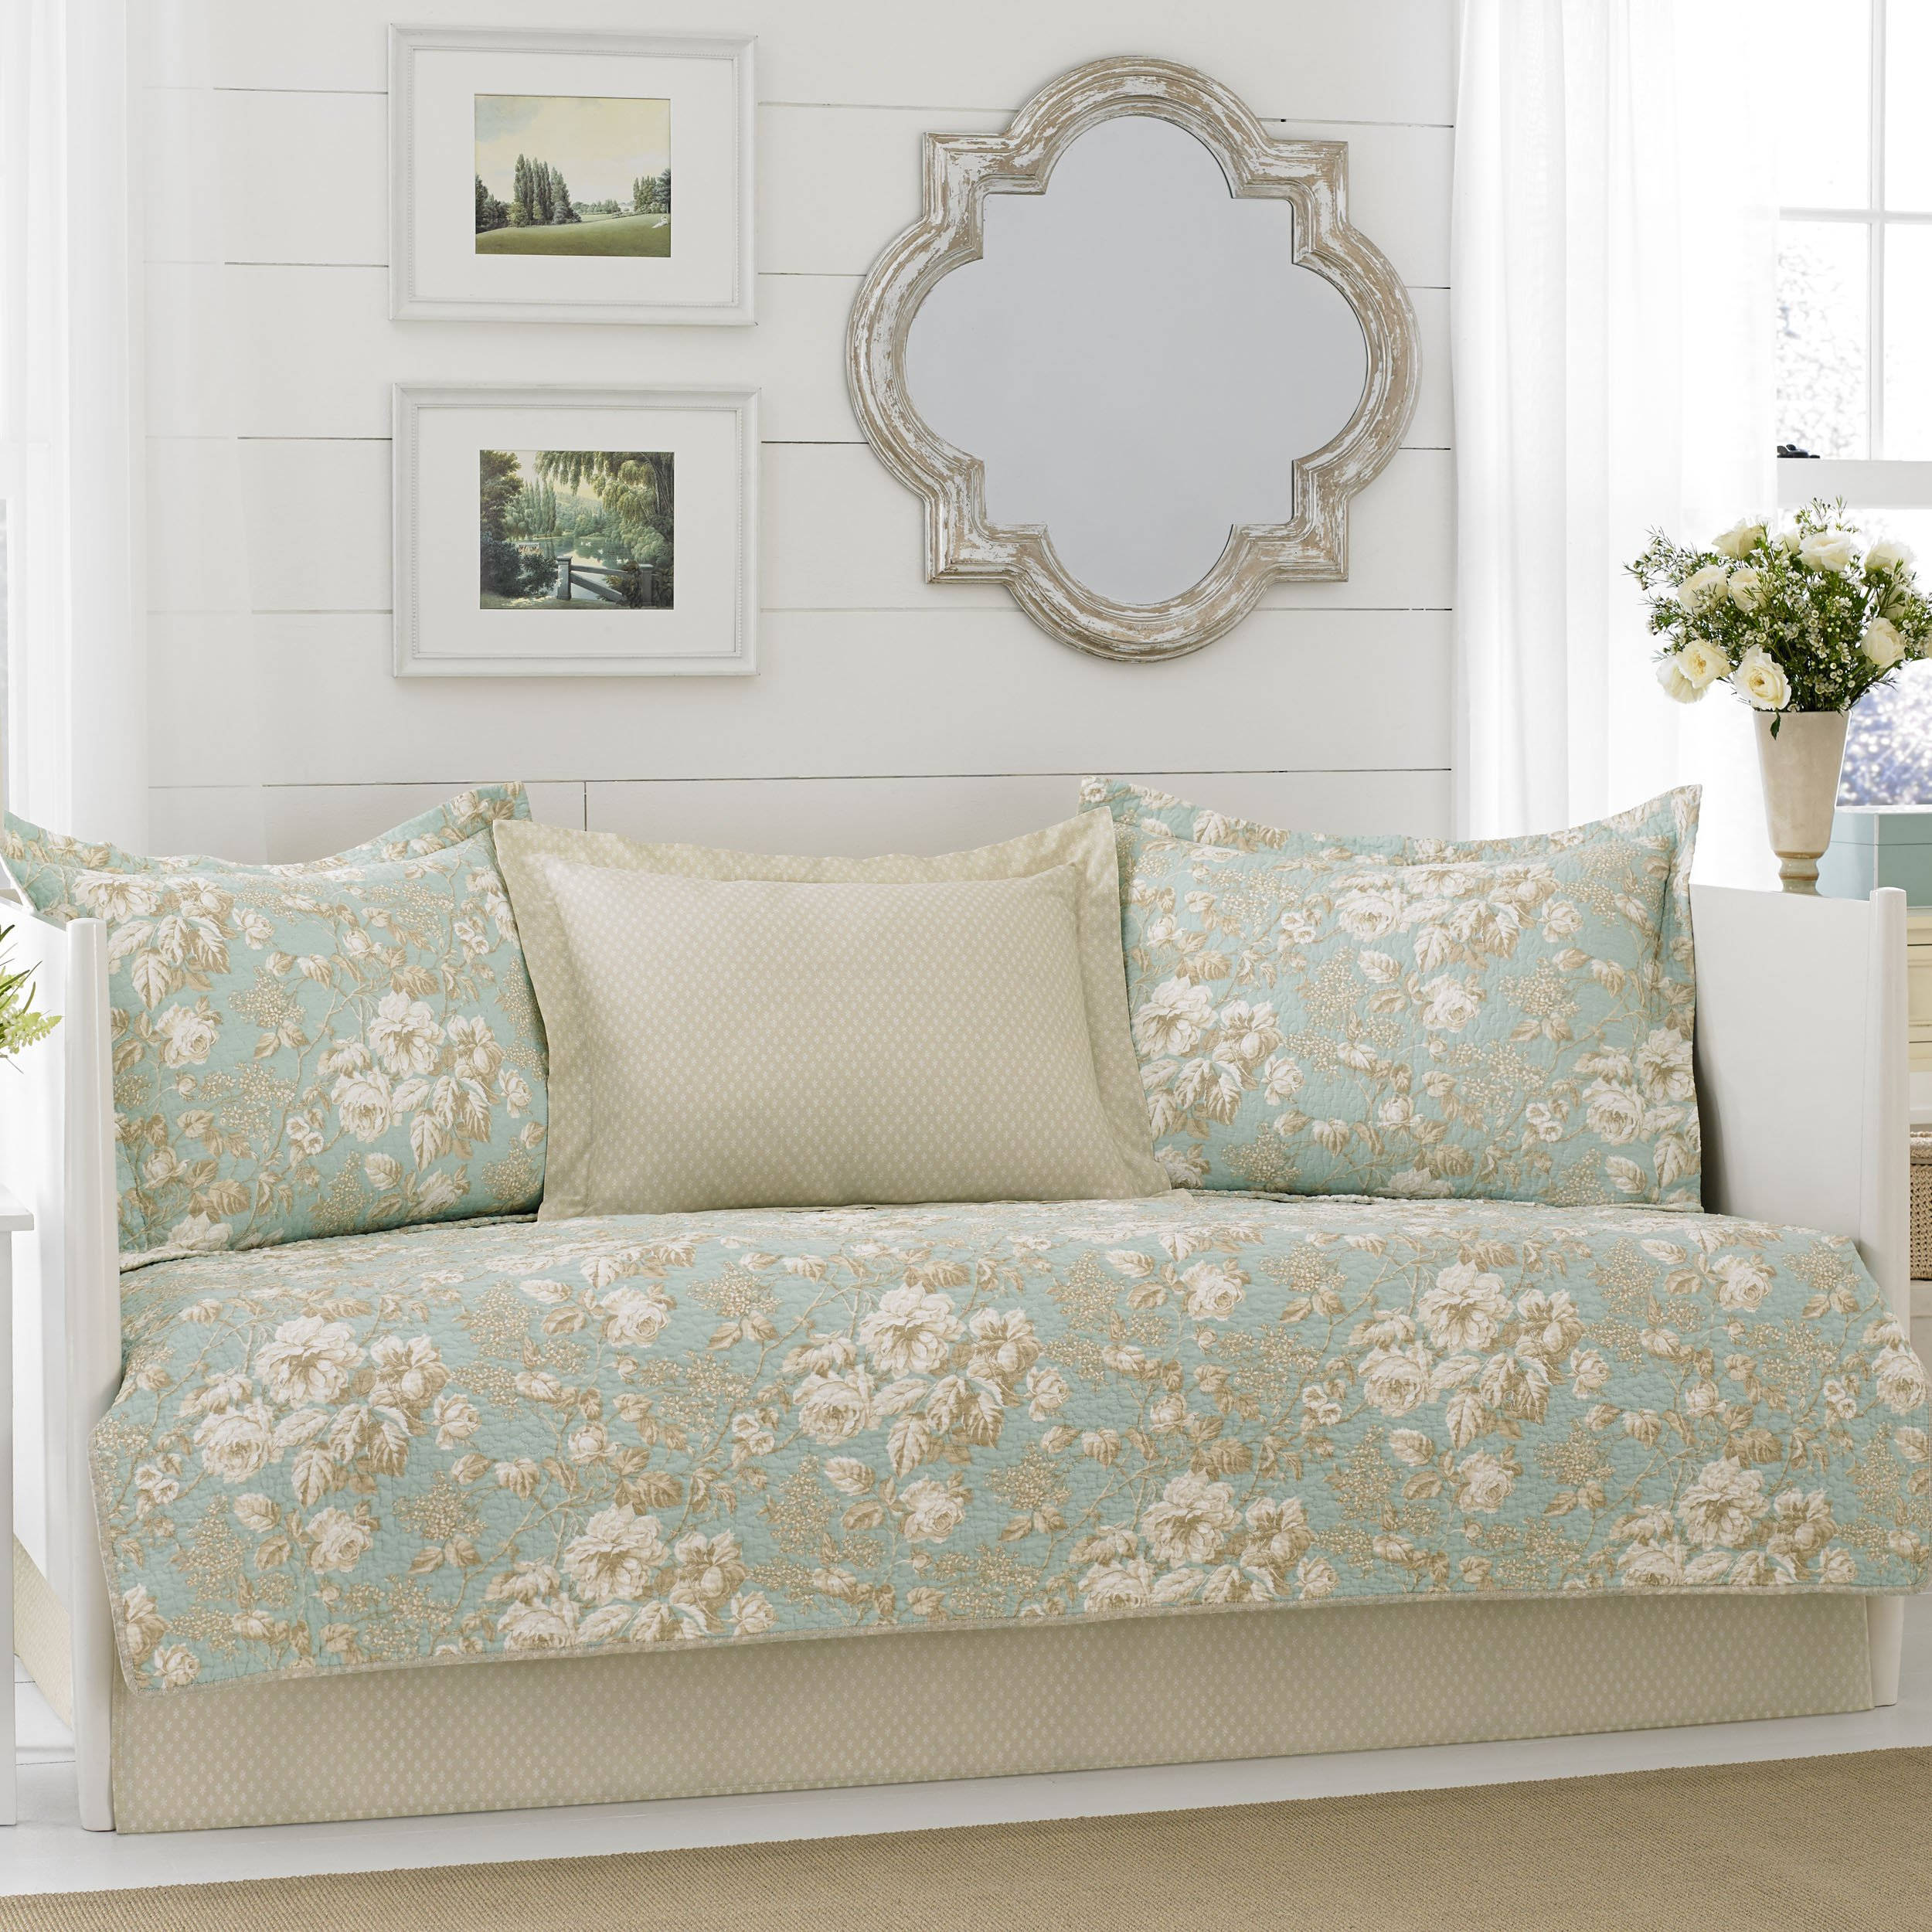 Laura Ashley Brompton 5-Piece Daybed Cover Set, Twin, Green by Laura Ashley